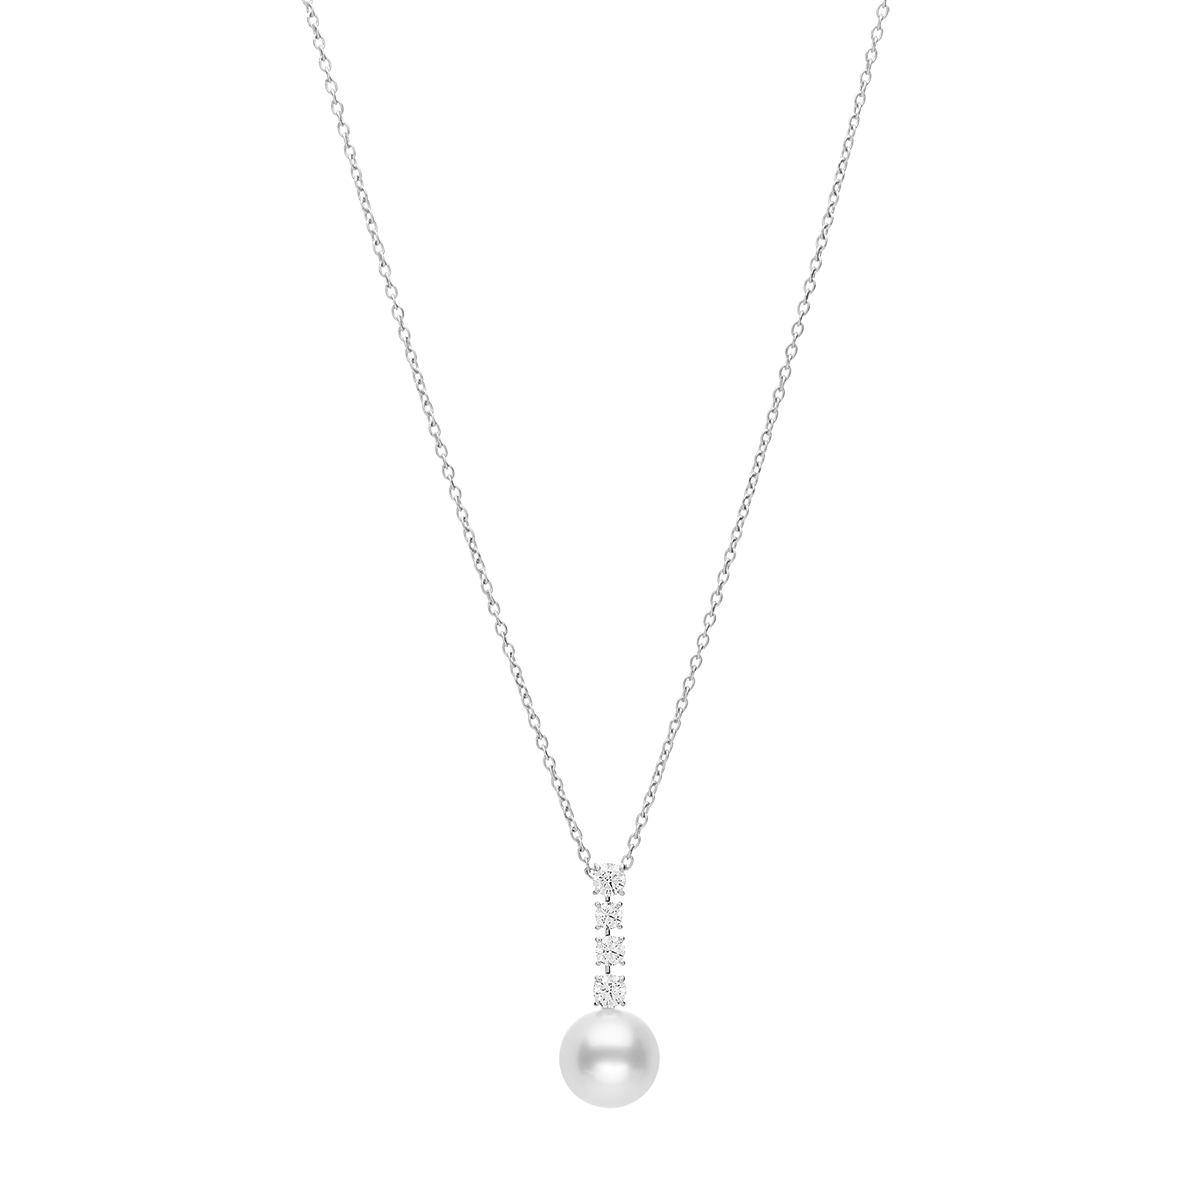 White South Sea Pearl and Diamond Japan Collections Pendant